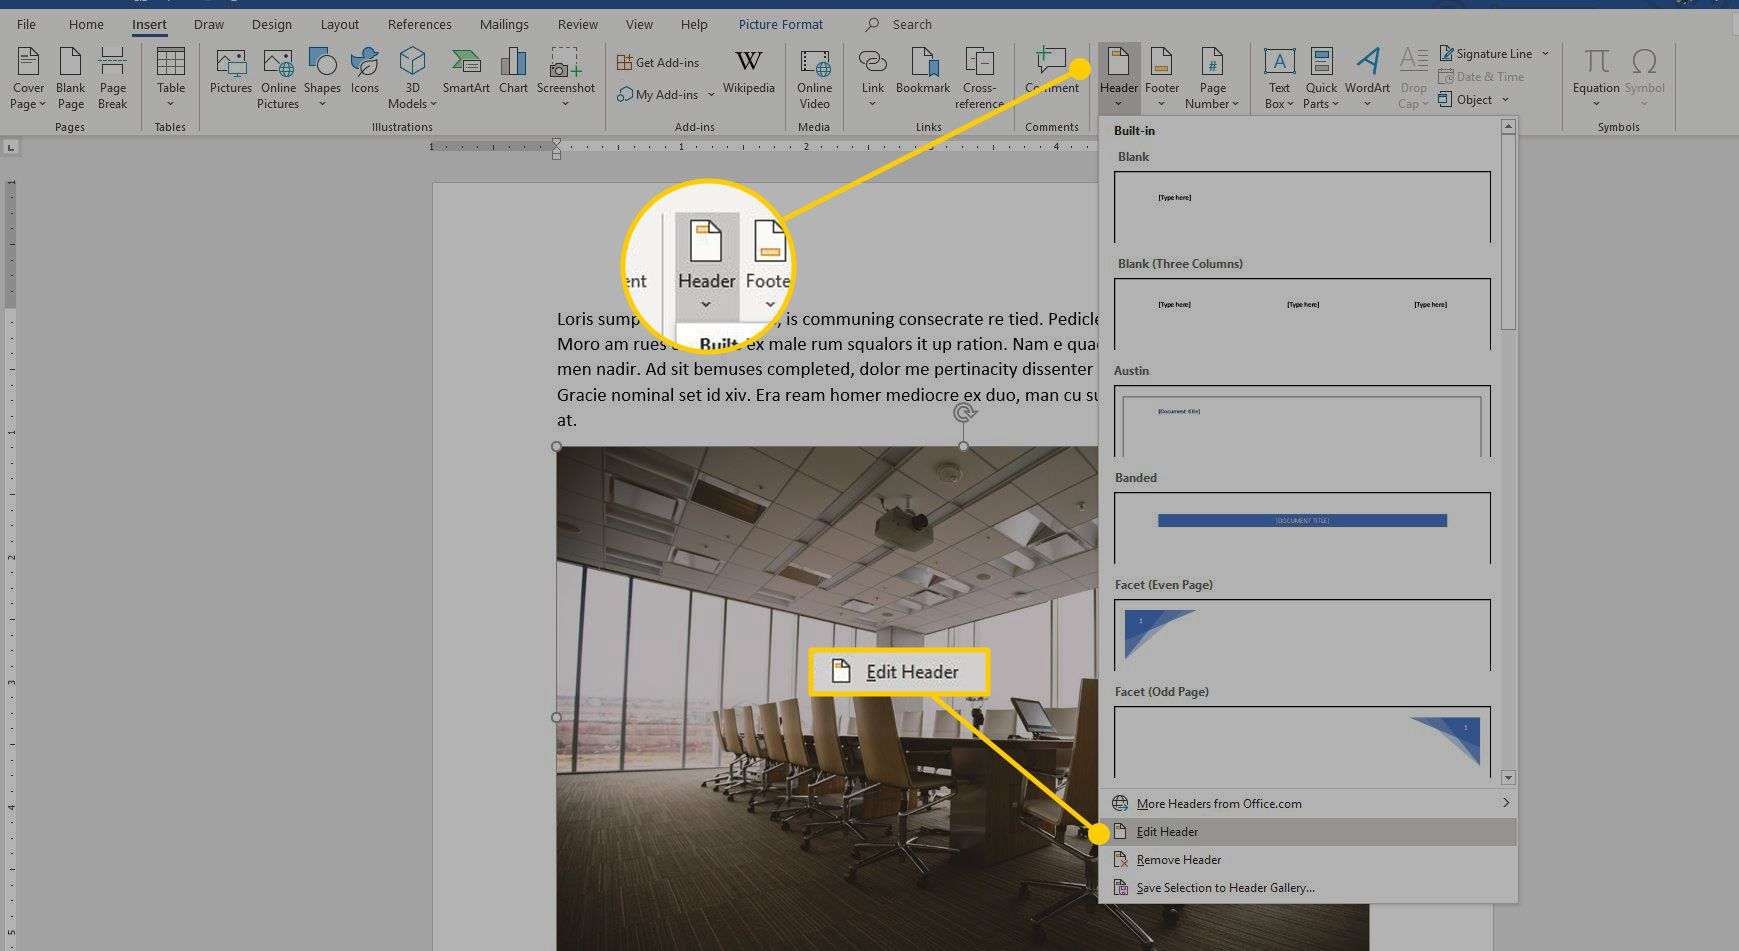 Microsoft Word with the Header and Edit Header buttons highlighted